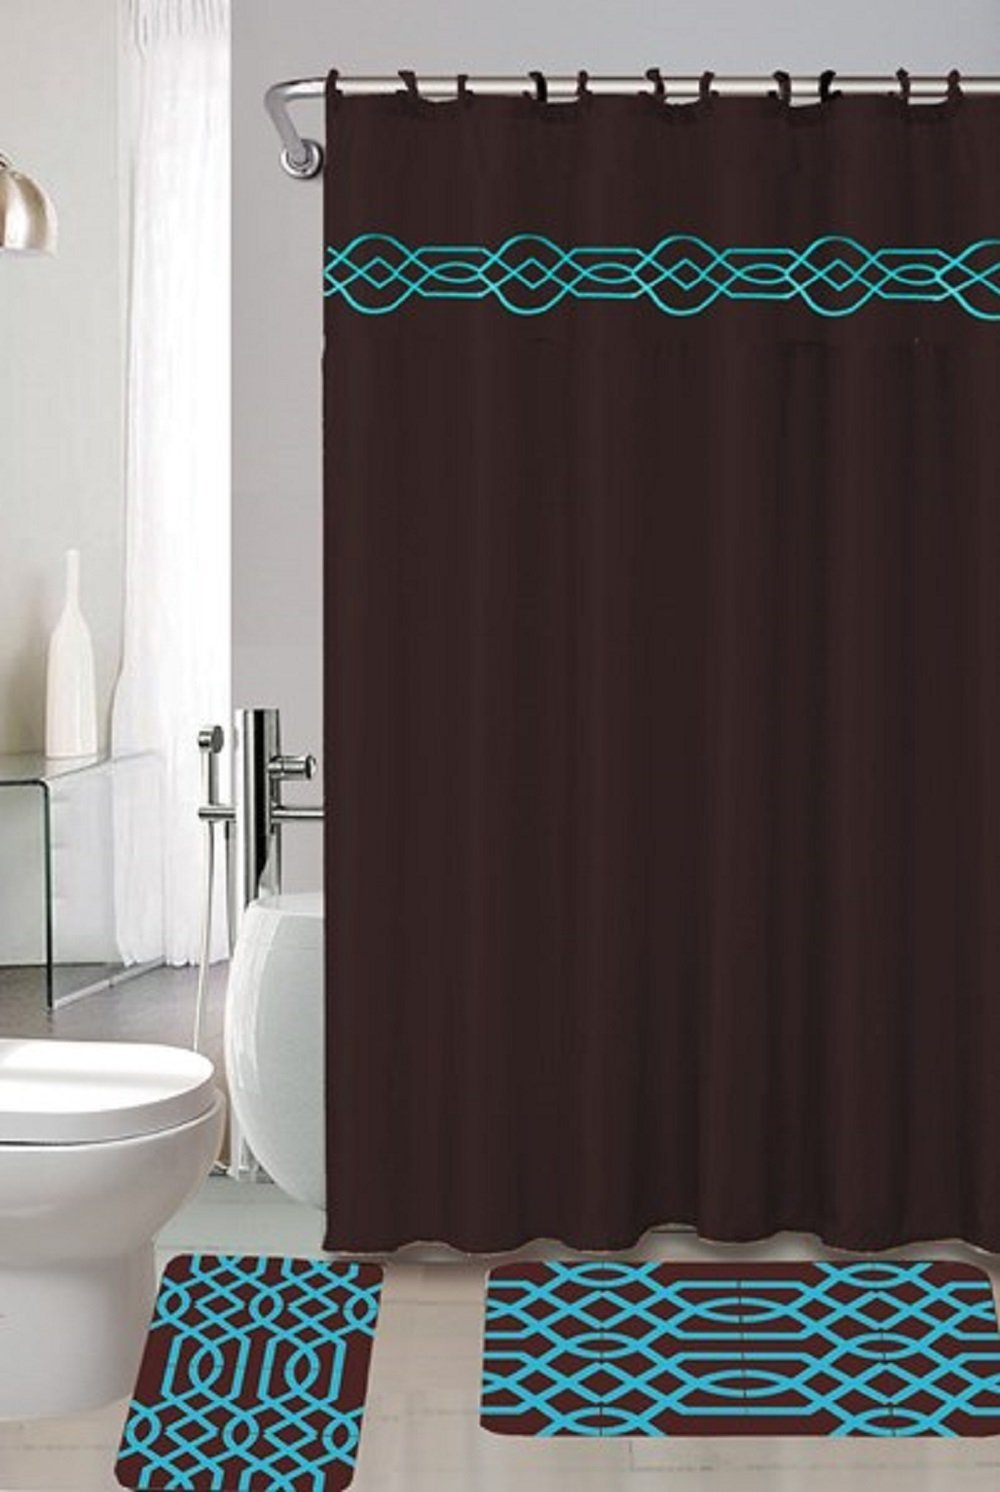 Exceptionnel 4 Piece Bath Set  Chocolate Brown Turquoise Blue Polypropylene Mats, Shower  Curtain And Fabric Hooks Fillagree   Walmart.com